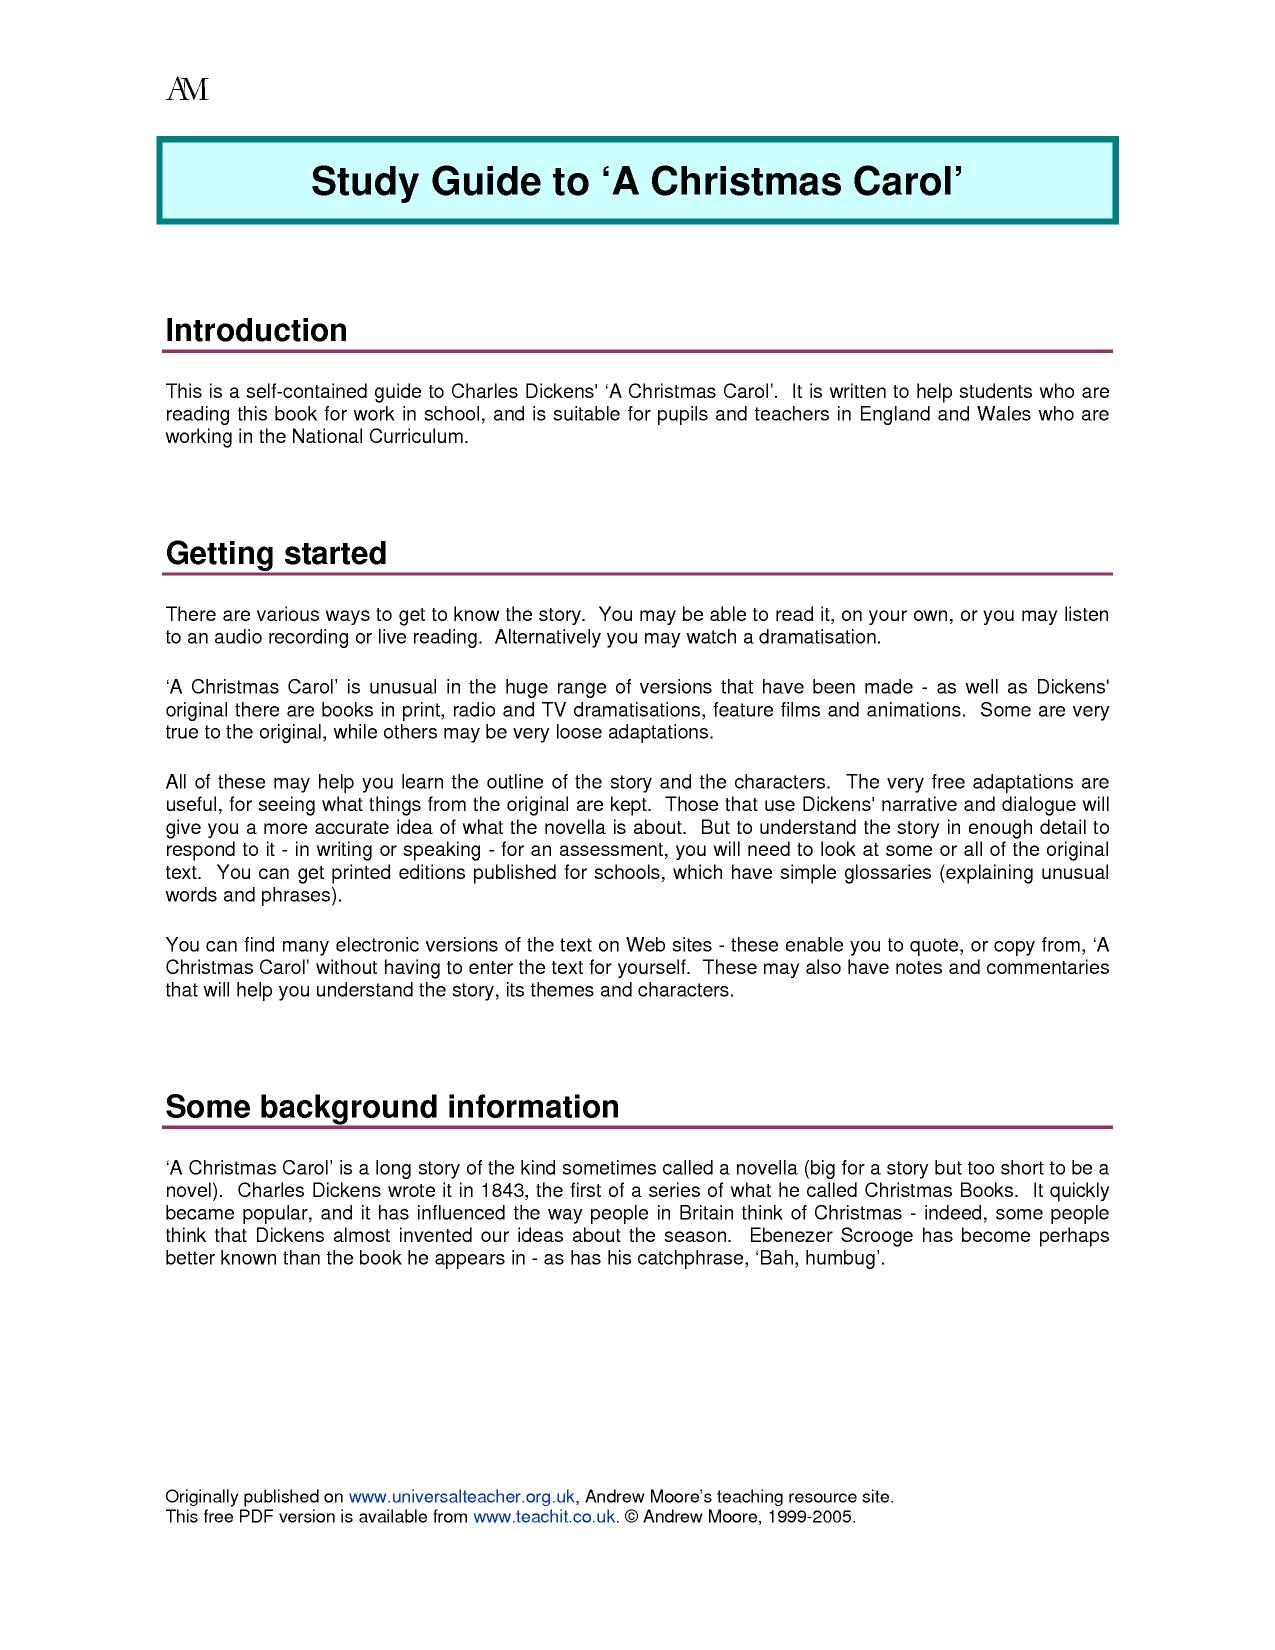 free printable resume my best friend essay in